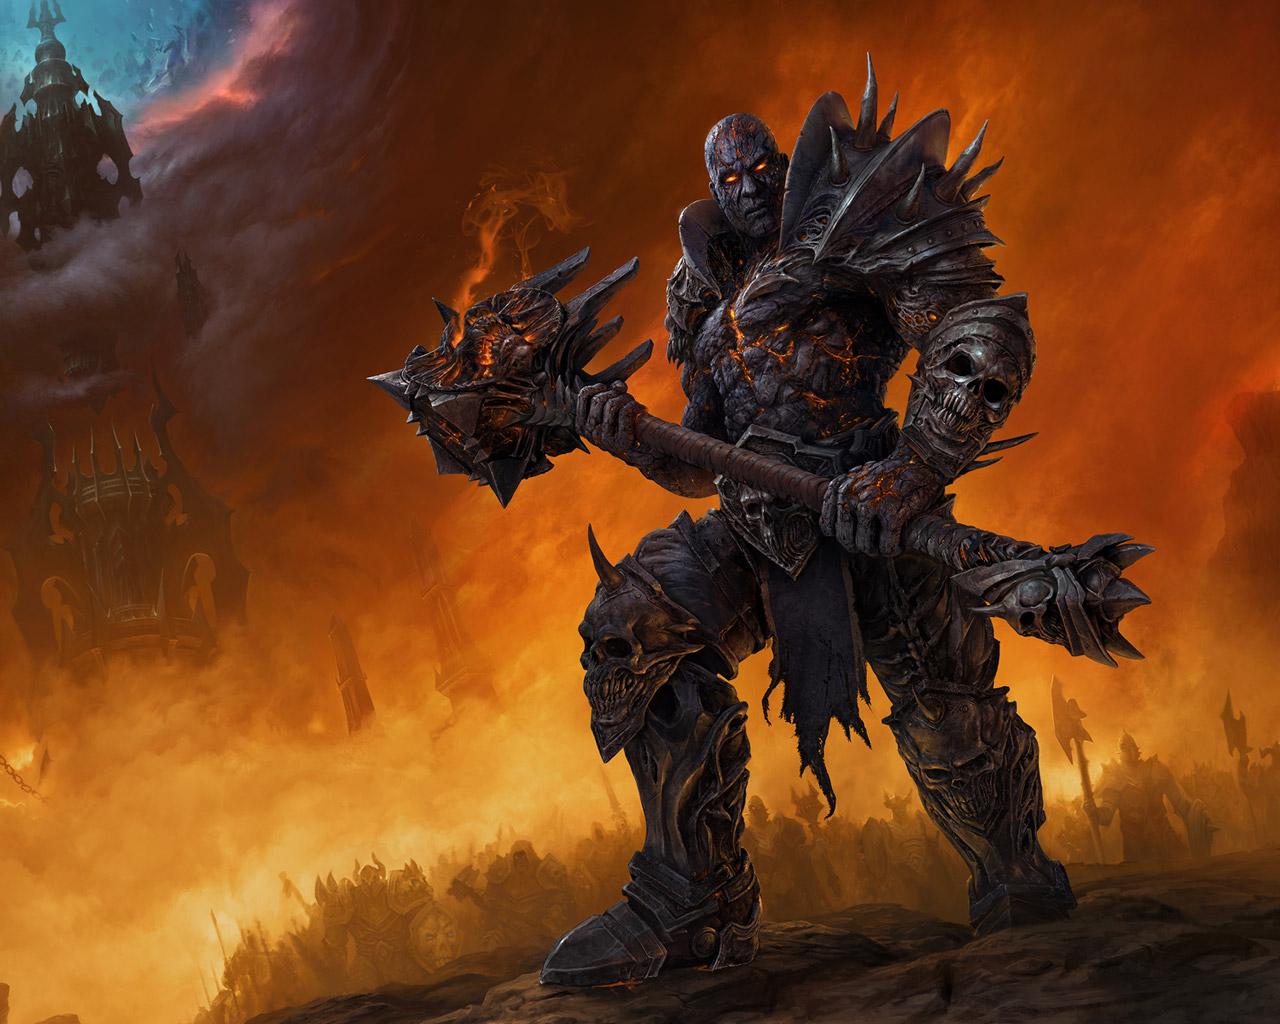 Free World of Warcraft Wallpaper in 1280x1024